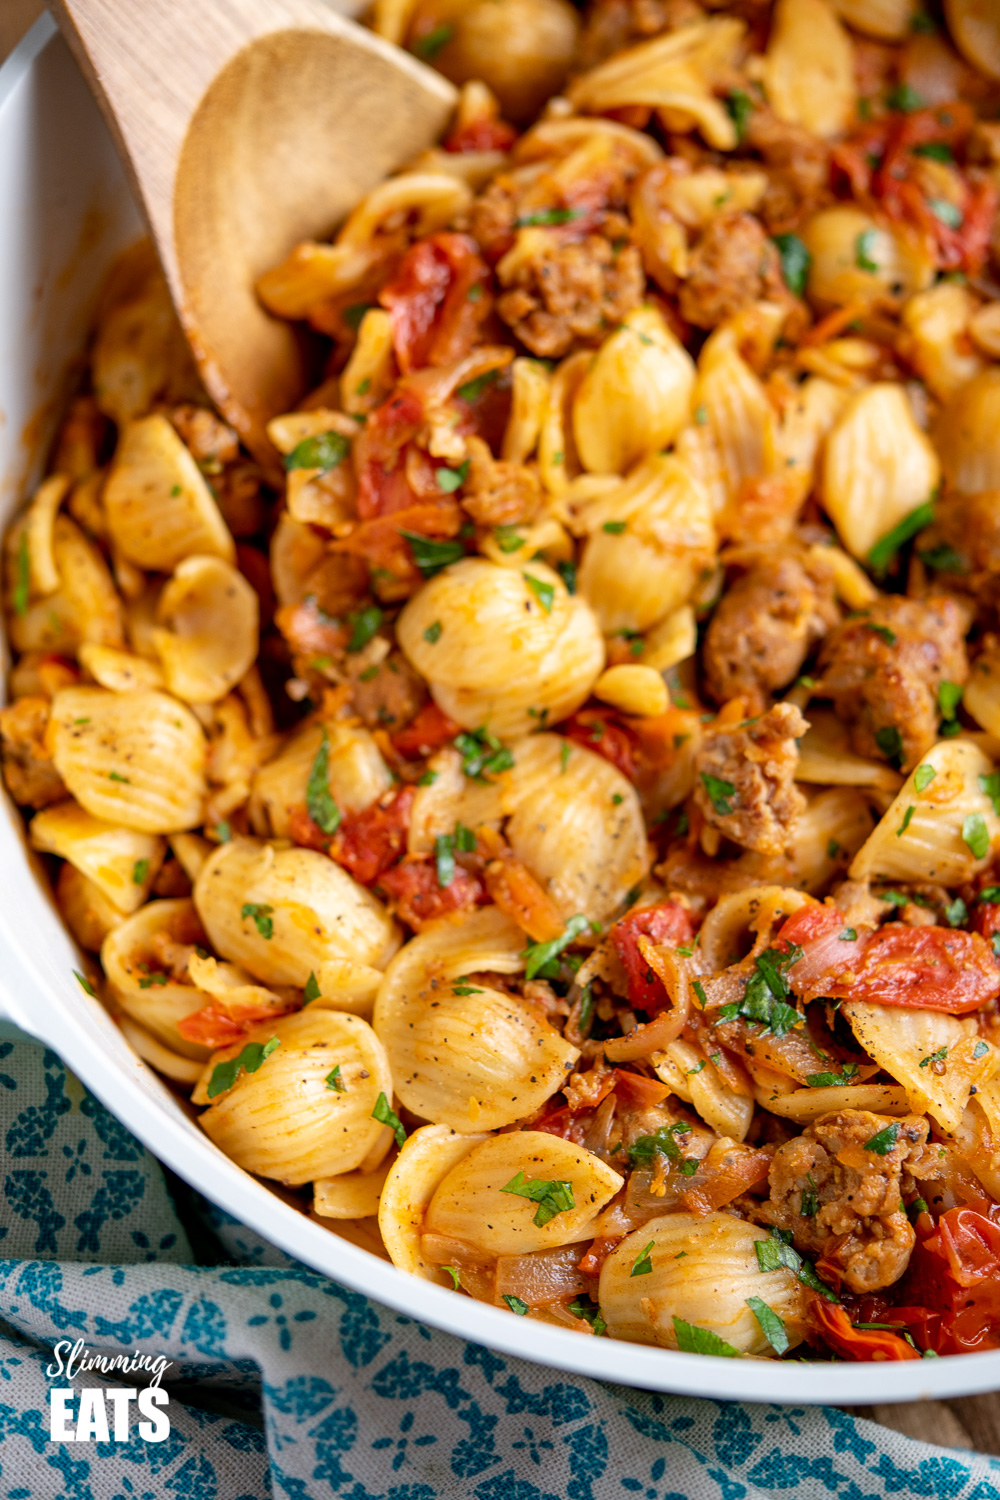 Sausage, Balsamic Tomatoes and Onion with Orecchiette close up in pan with wooden spoon